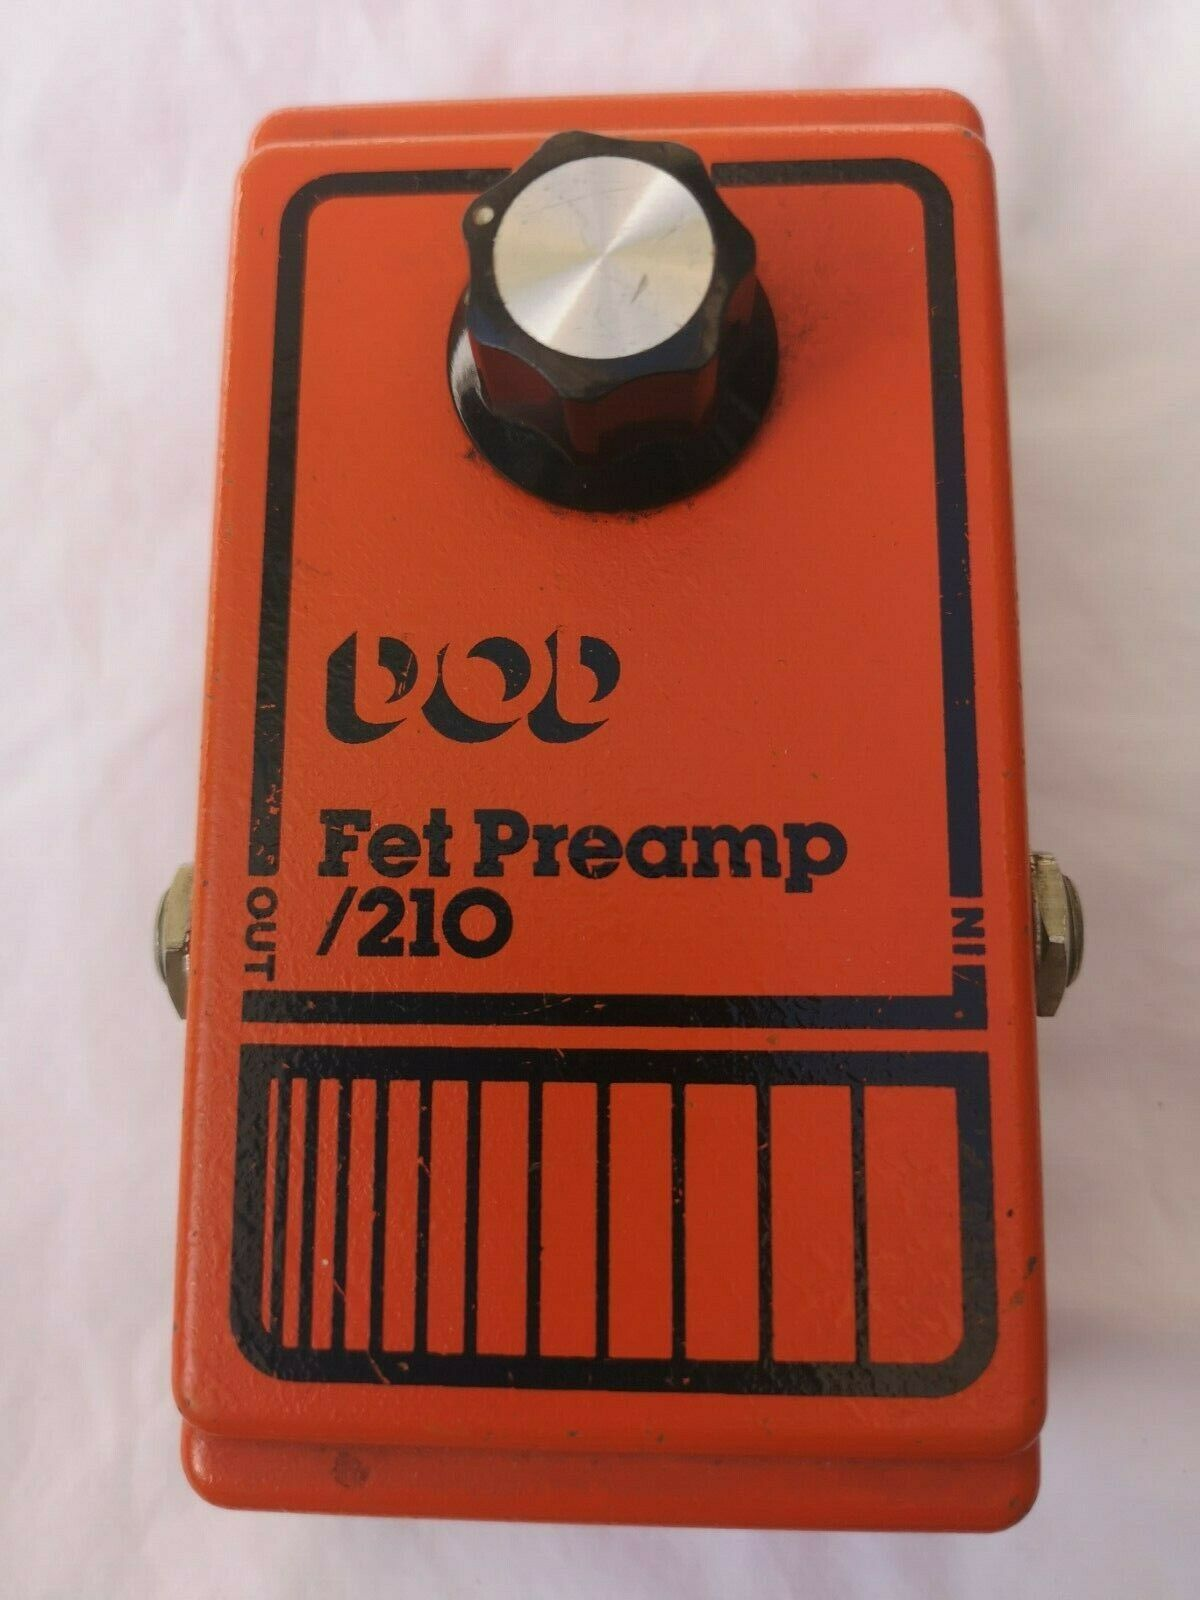 DOD FET PREAMP 210 - FREE NEXT DAY DELIVERY IN THE UK